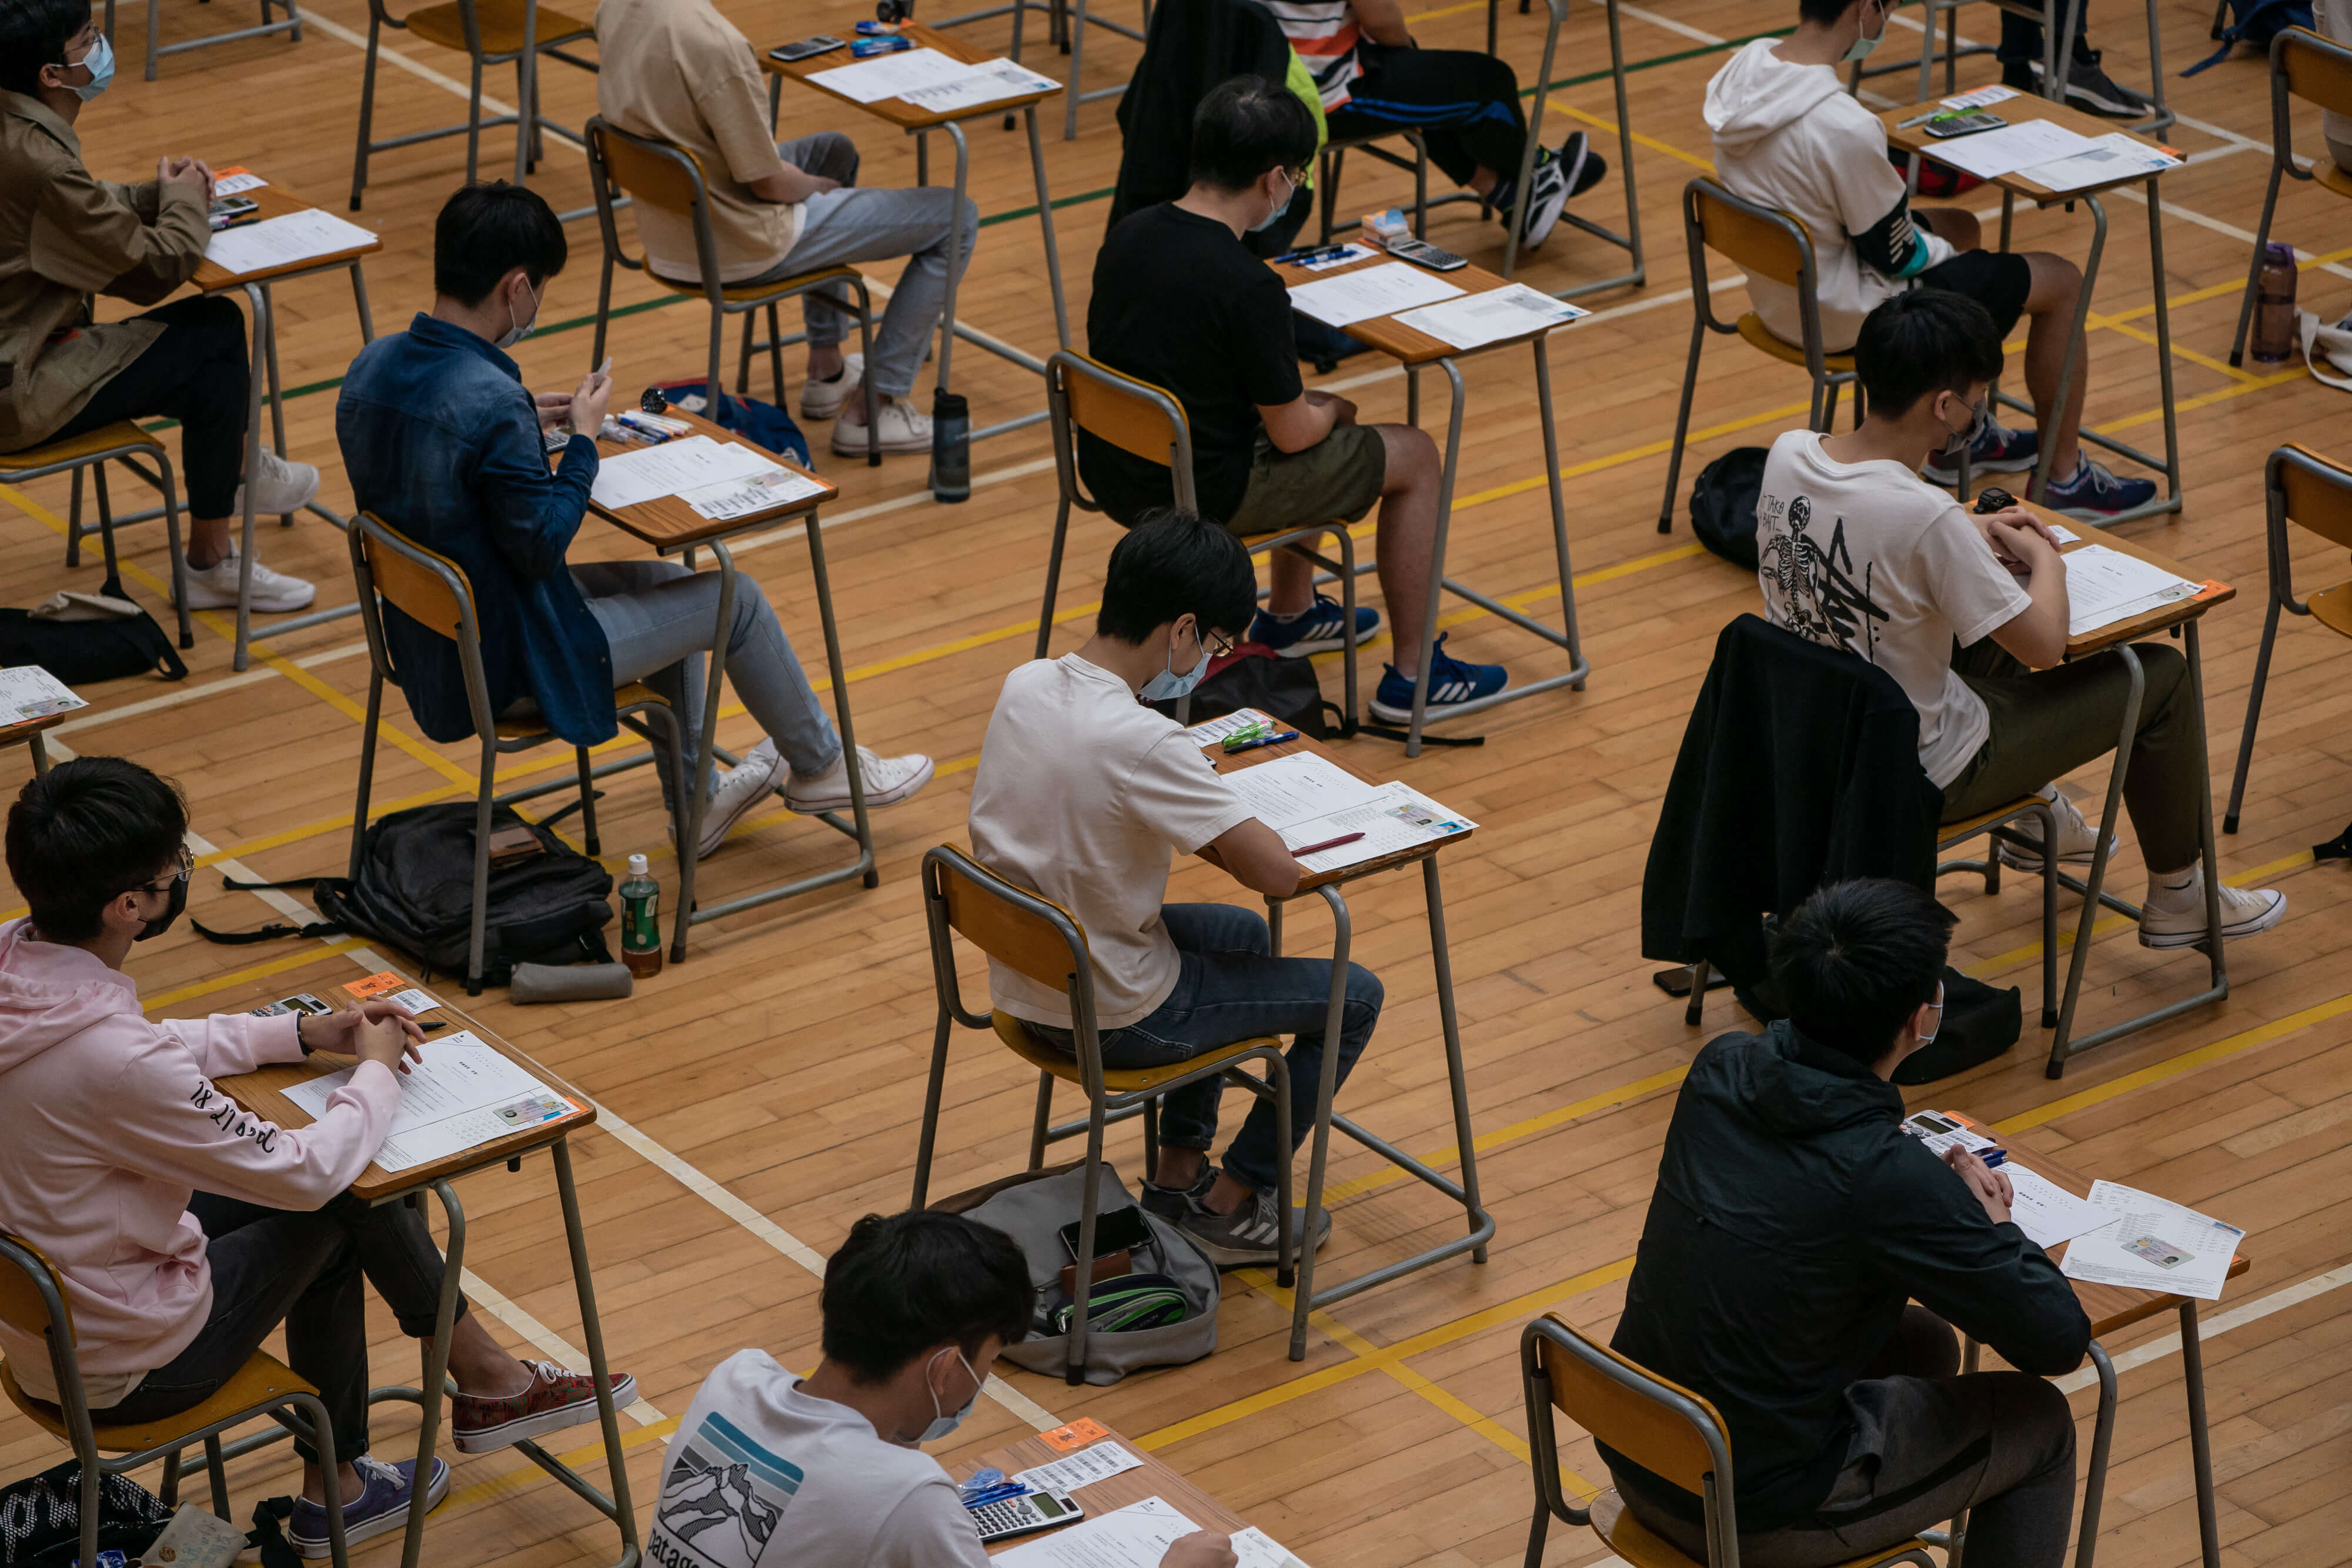 Should traditional end-of-school exams be abolished?